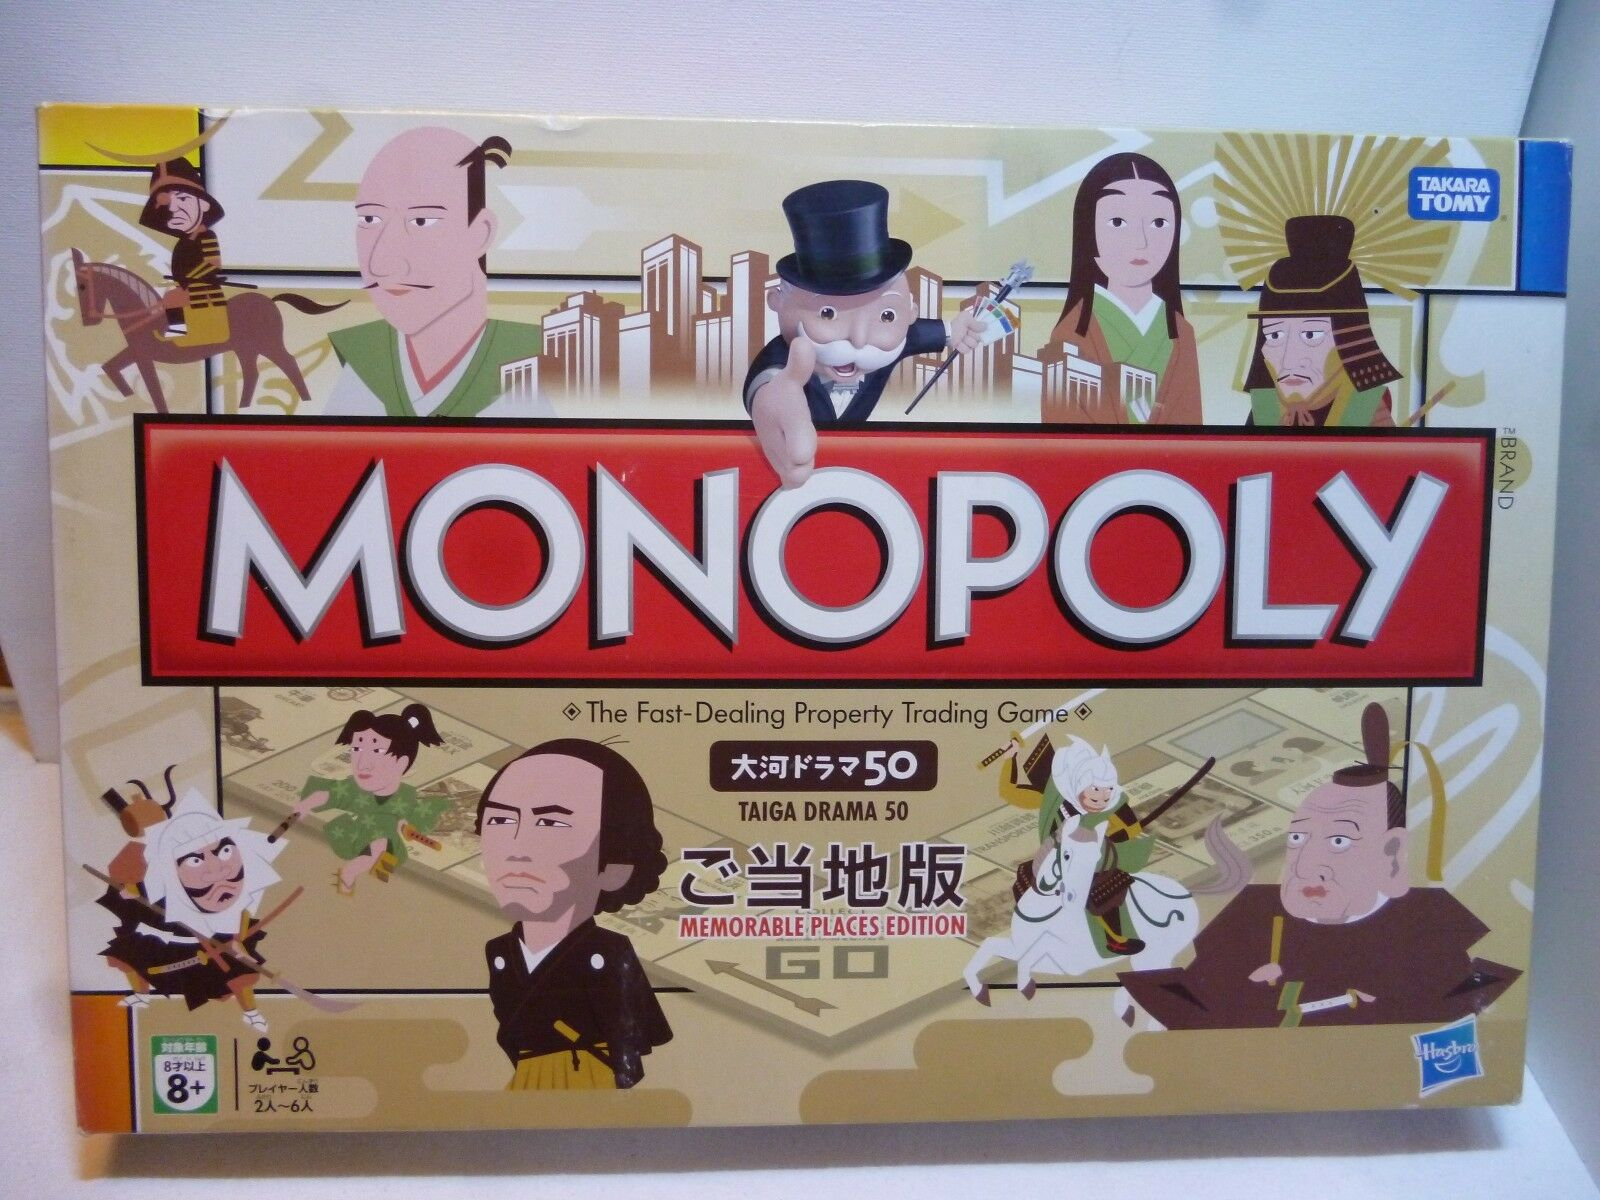 Takara Tomy Monopoly Taiga Taiga Taiga Drama 50 Hasbro Memorable Places Edition Ultra Rare d95ebe